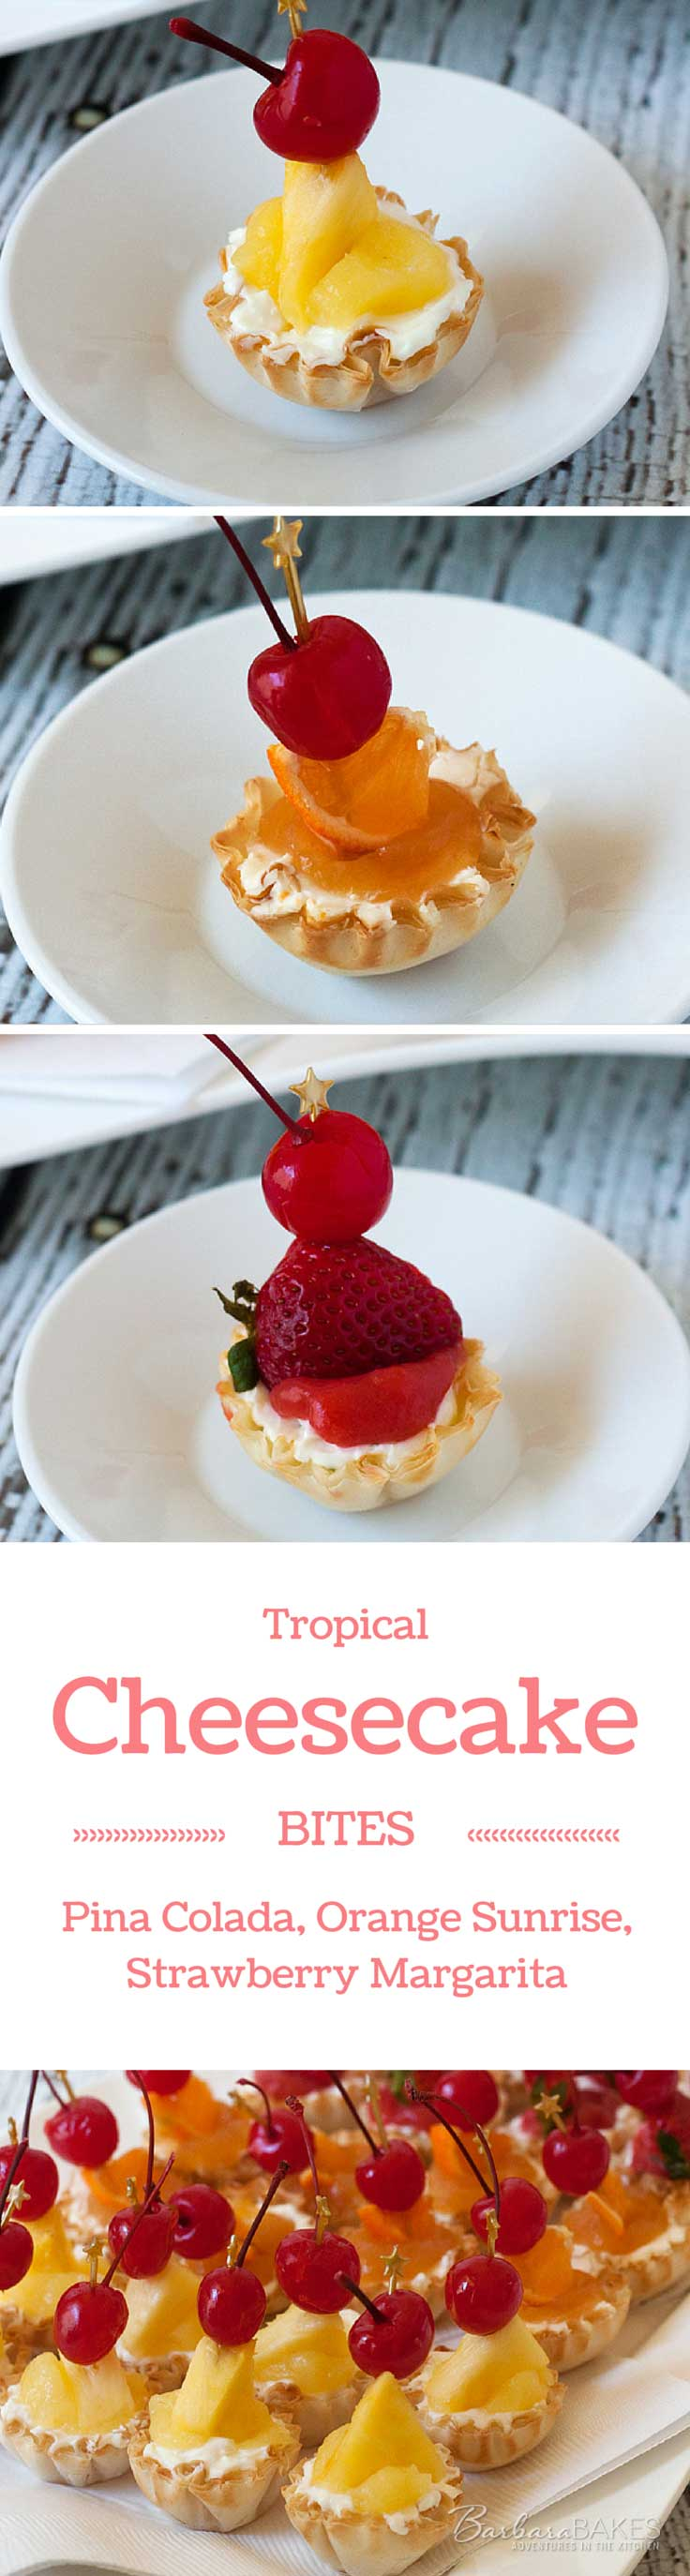 I've turned tropical drink flavors in to luscious dessert bites, and dressed them up like you would tropical drinks. My tropical cheesecake bites, Pina Colada, Strawberry Margarita, and Orange Sunrise, would be fabulous any time of year, but especially fun for a New Years Eve party.